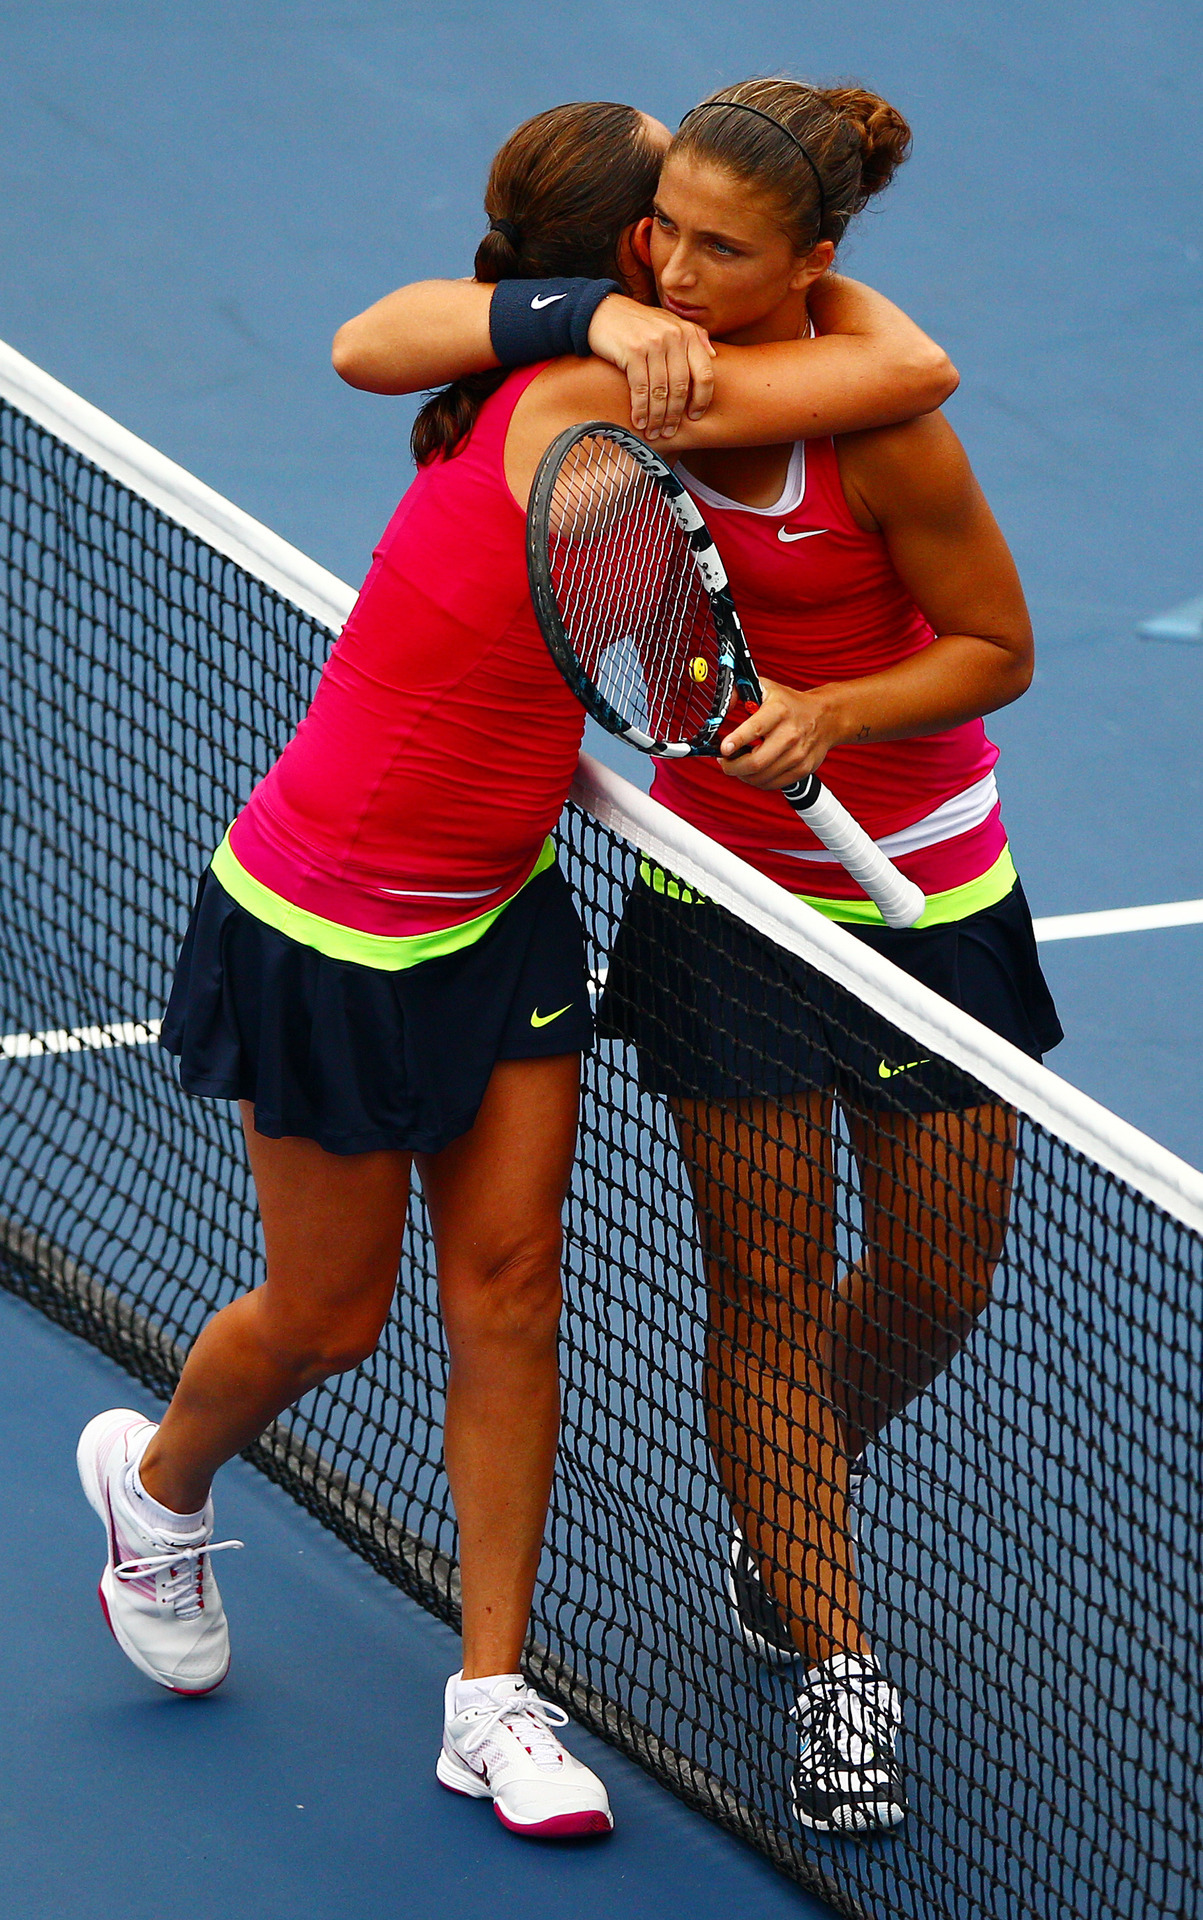 Wait a second … You're not seeing double: Sara Errani and Roberta Vinci (both of Italy) wore the same outfit in their women's quarter-final. It might have something to do with the fact that they are doubles partners. The crowd in New York might have been a bit confused, so maybe next time they should call each other?